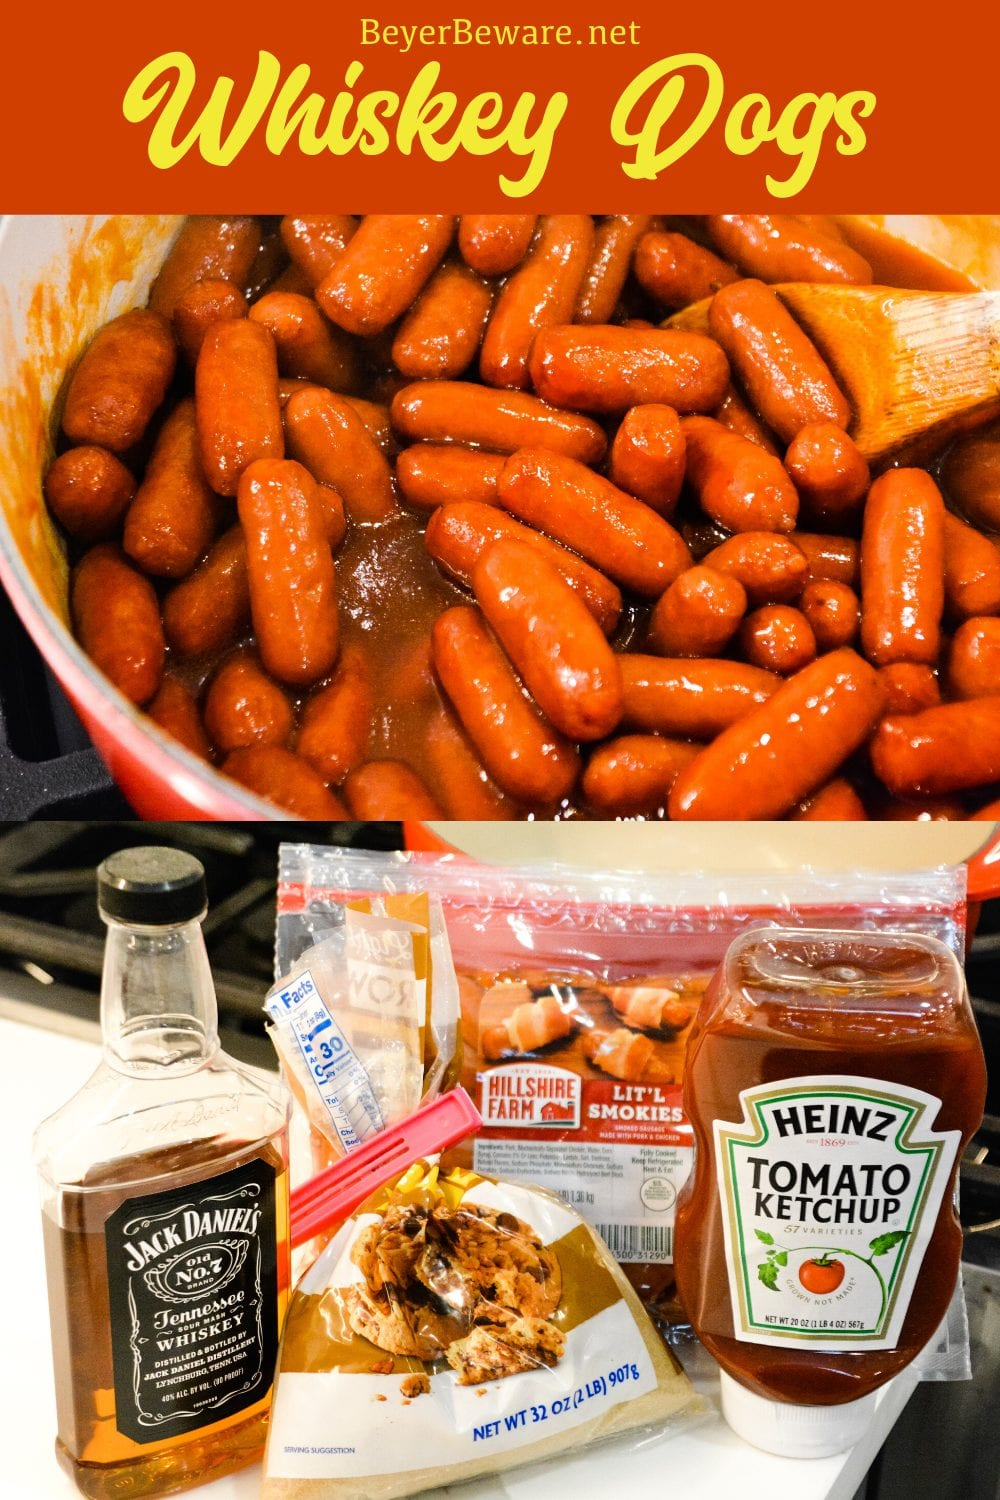 Whiskey dogs are a quick lit'l smokies appetizer made with ketchup, brown sugar, and whiskey either cooked on the stove or in a crock pot until the little weiners are hot.